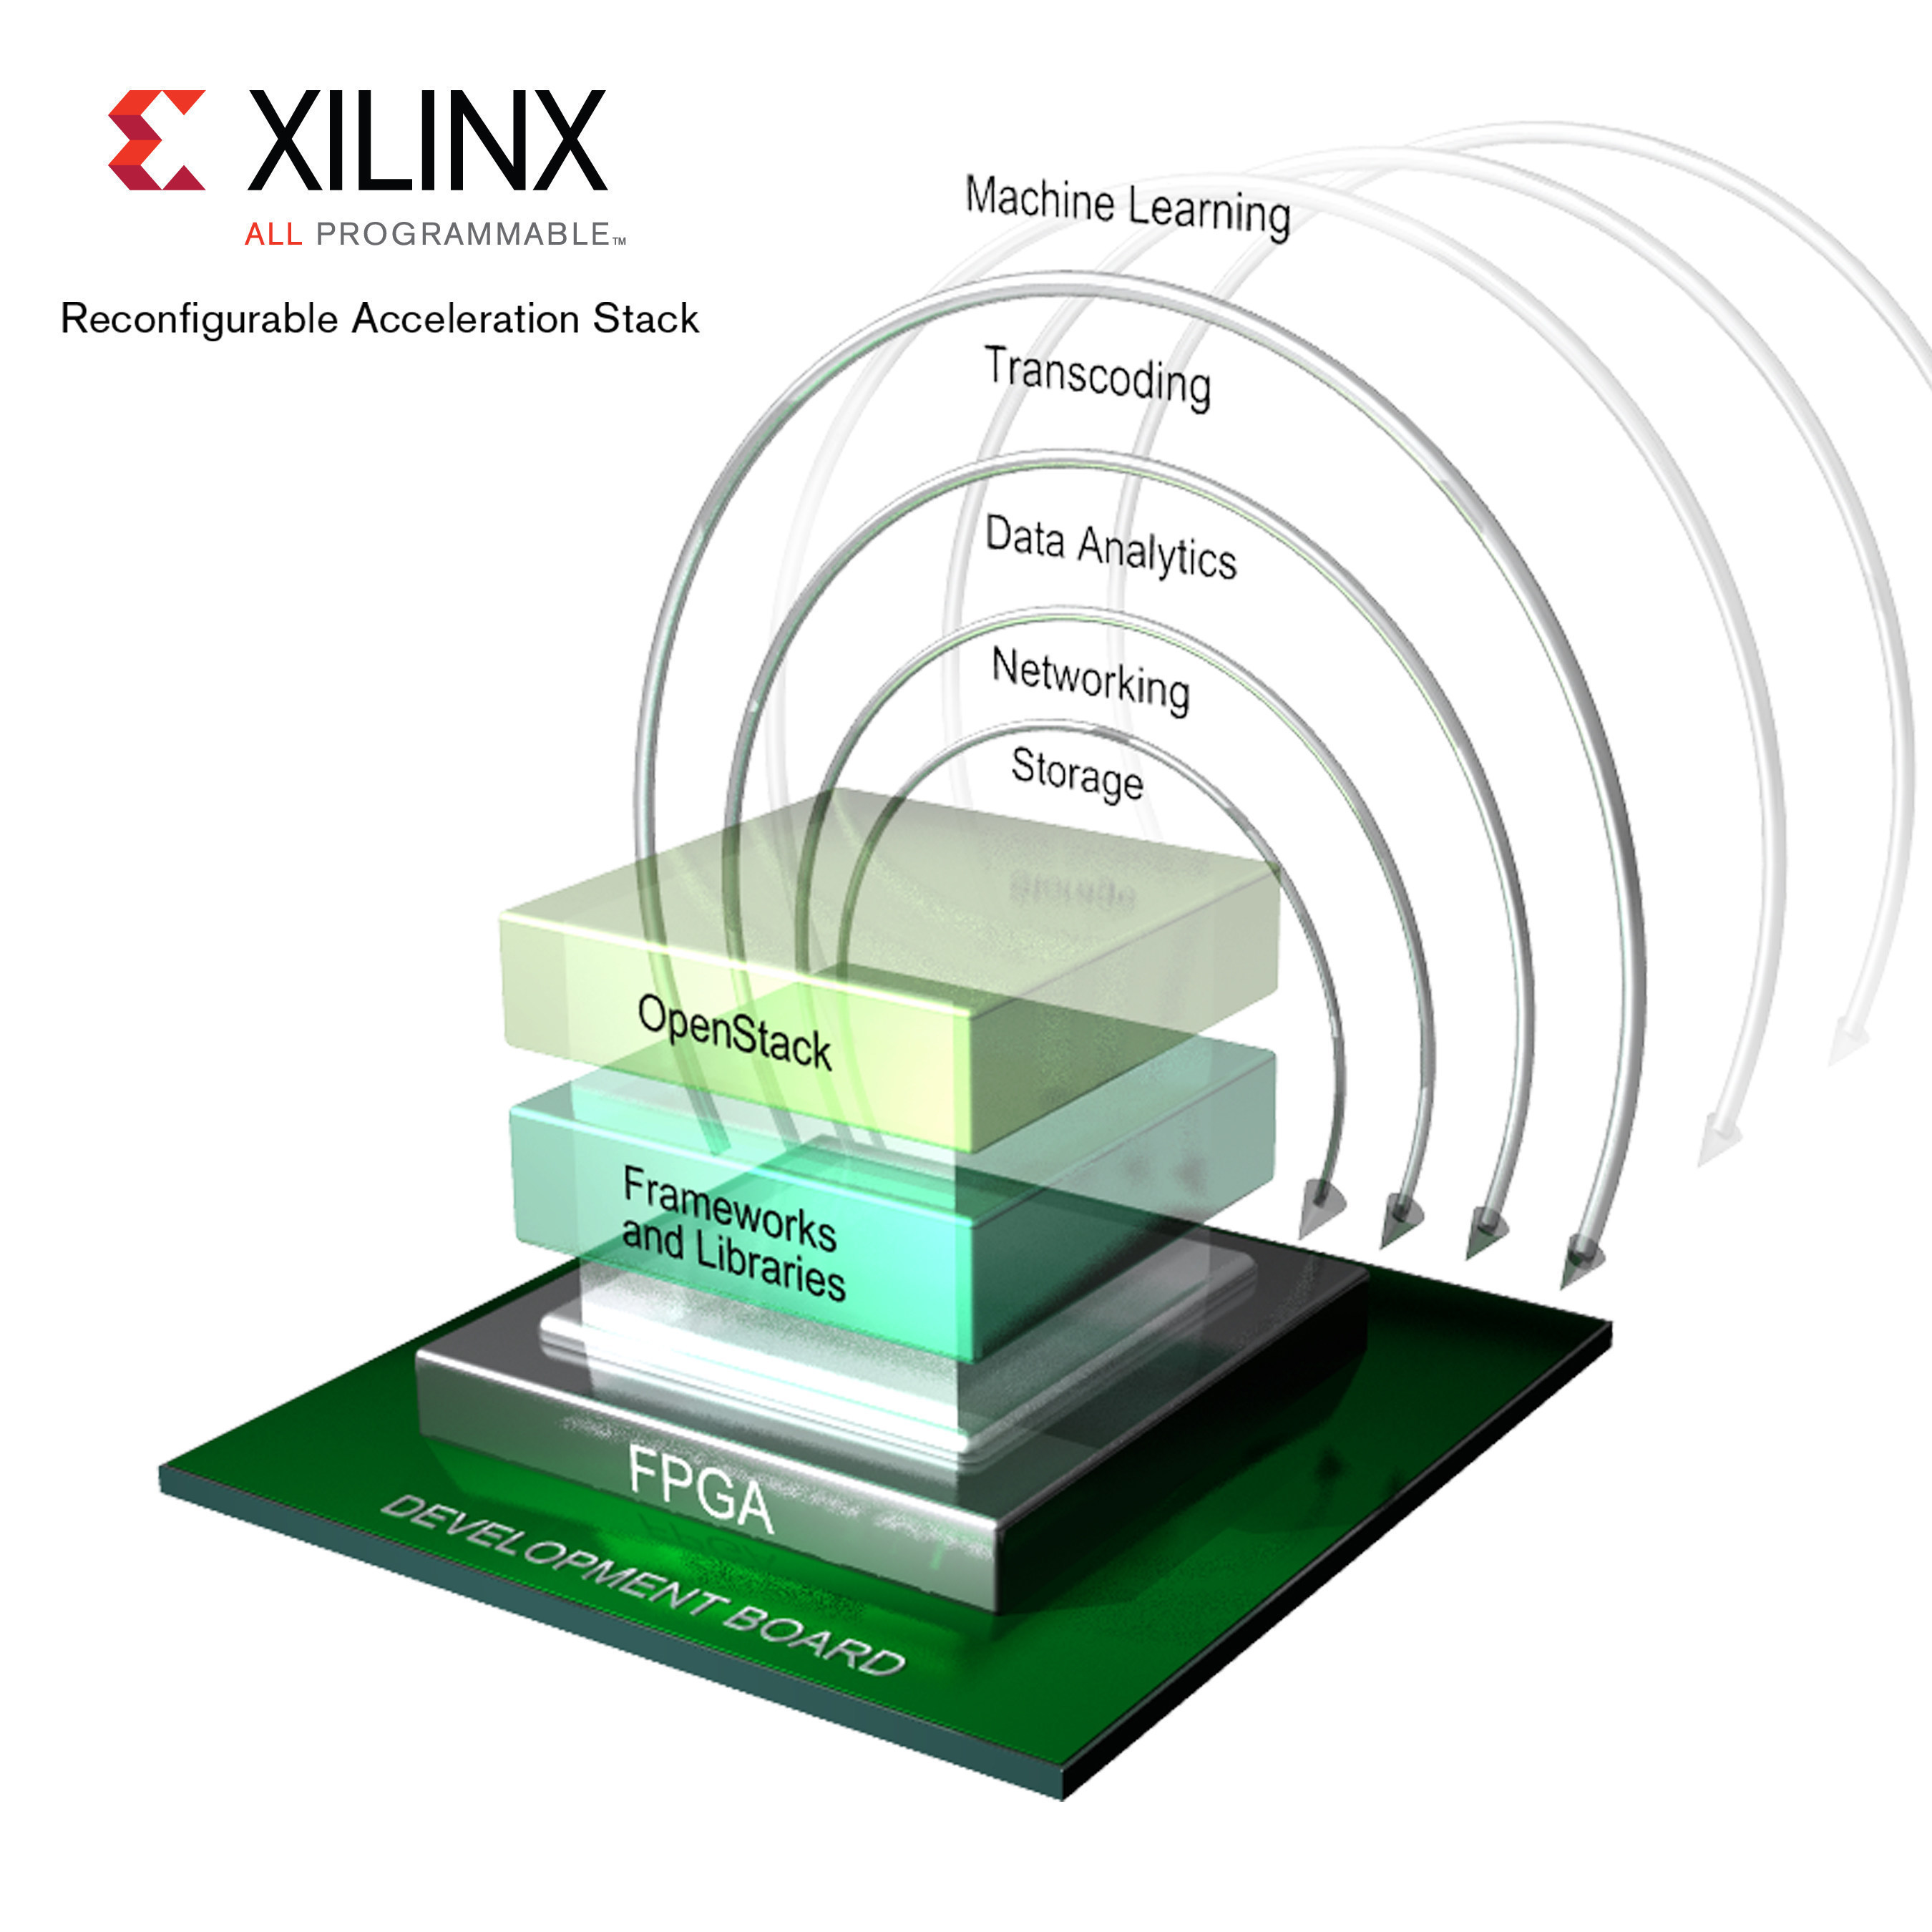 The FPGA-powered Xilinx(r) Reconfigurable Acceleration Stack.